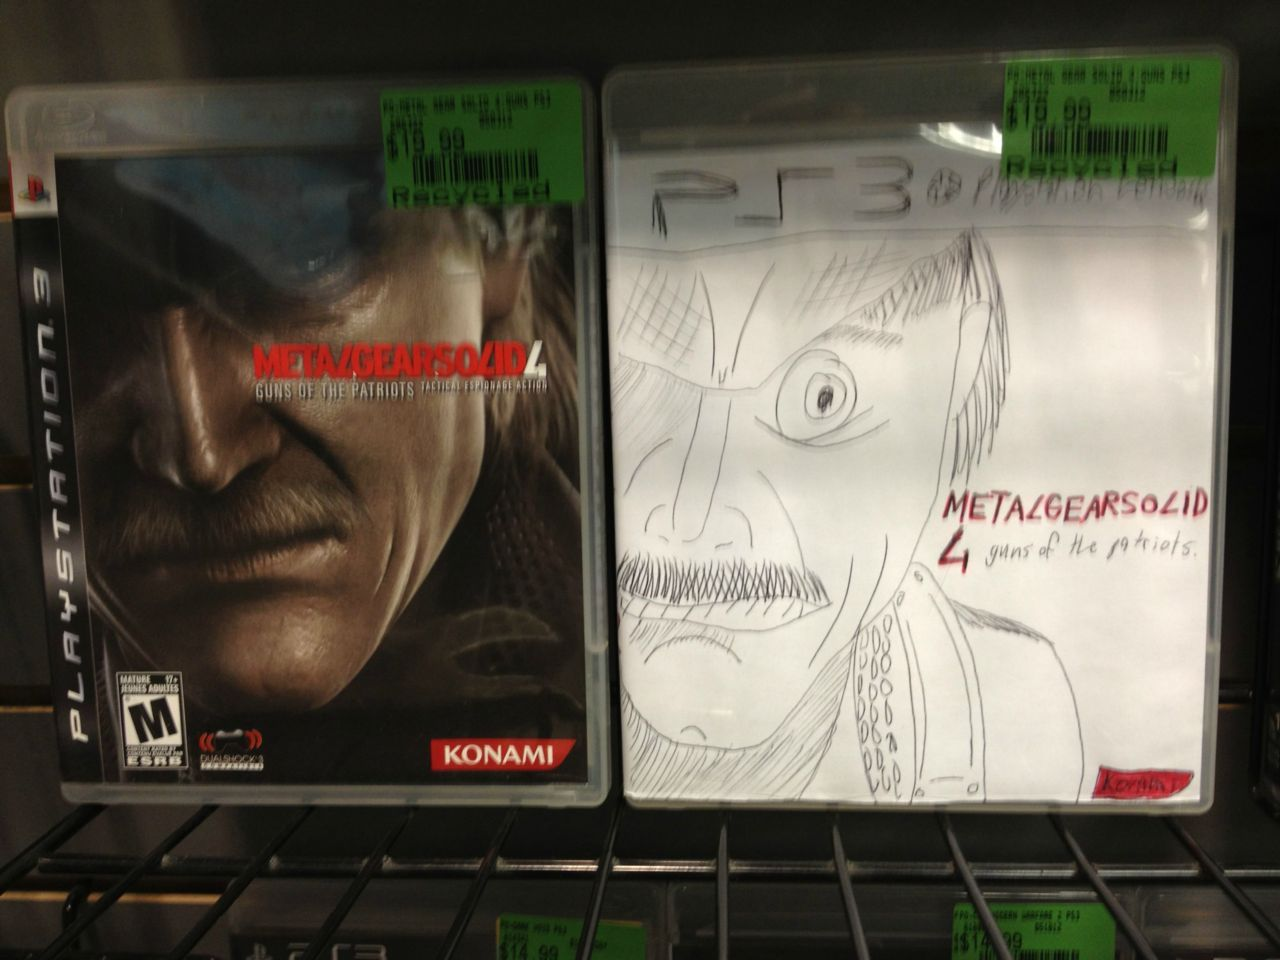 medicinaldog:  exoticfoxholes:  mikeheartu:  What my local EB Games does when they receive a used game with no cover  a beautiful masterpiece  the greatest  Spot on.